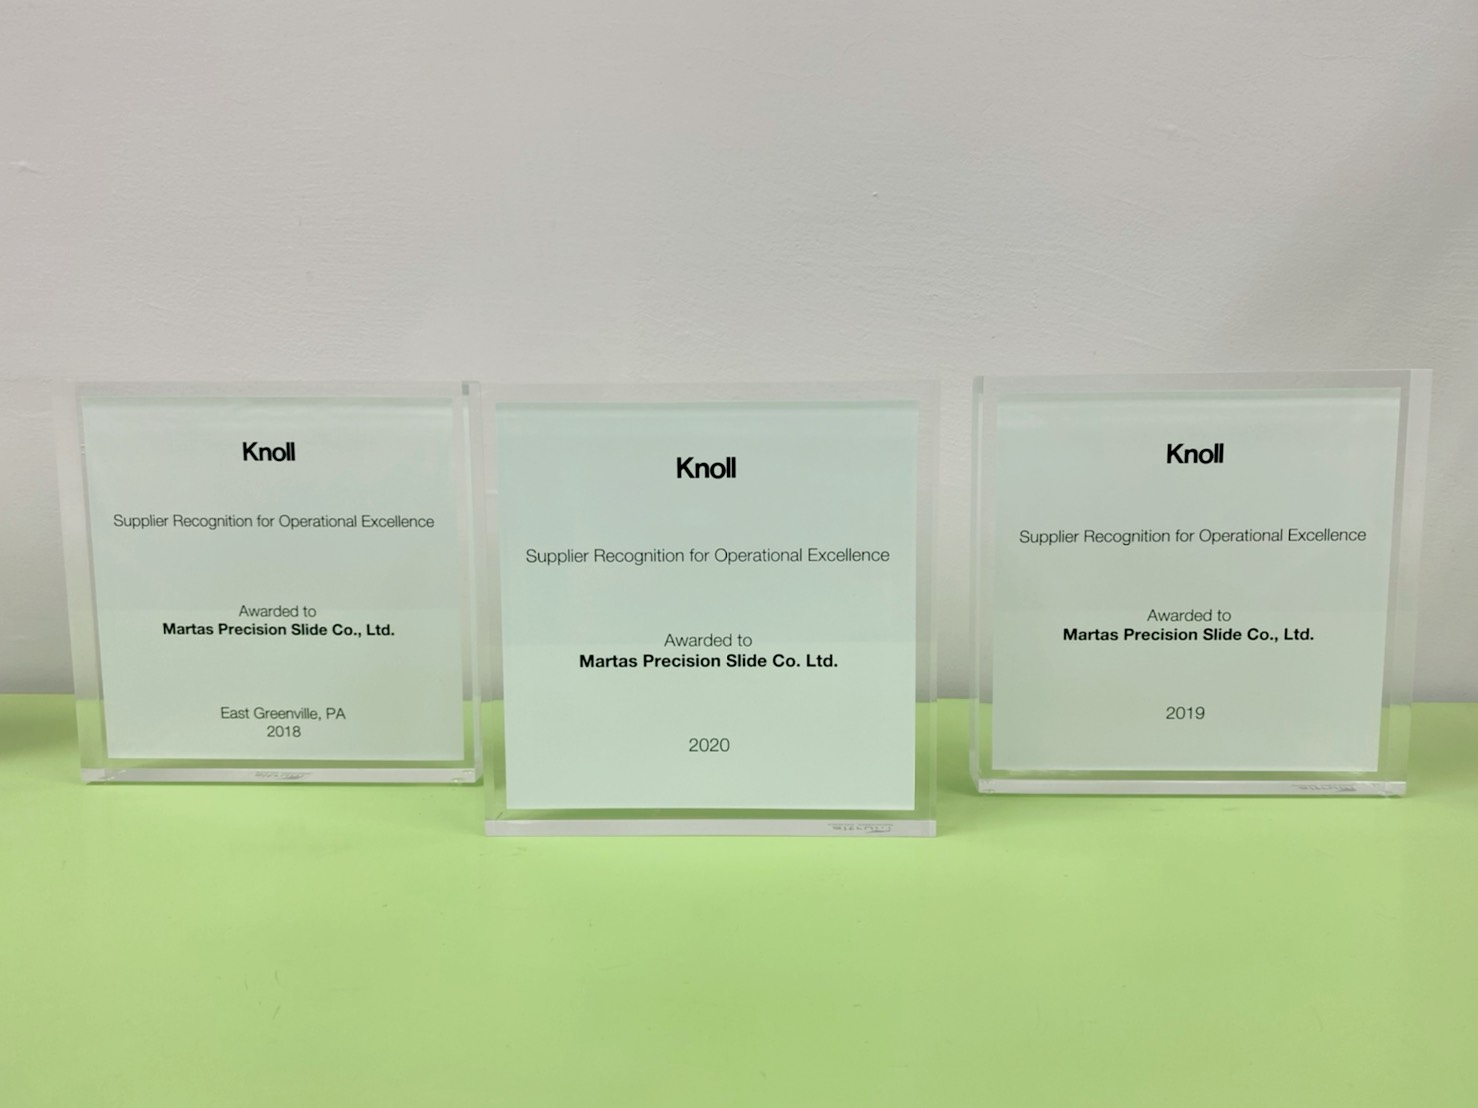 Martas won the Knoll operational excellence award for the third consecutive year